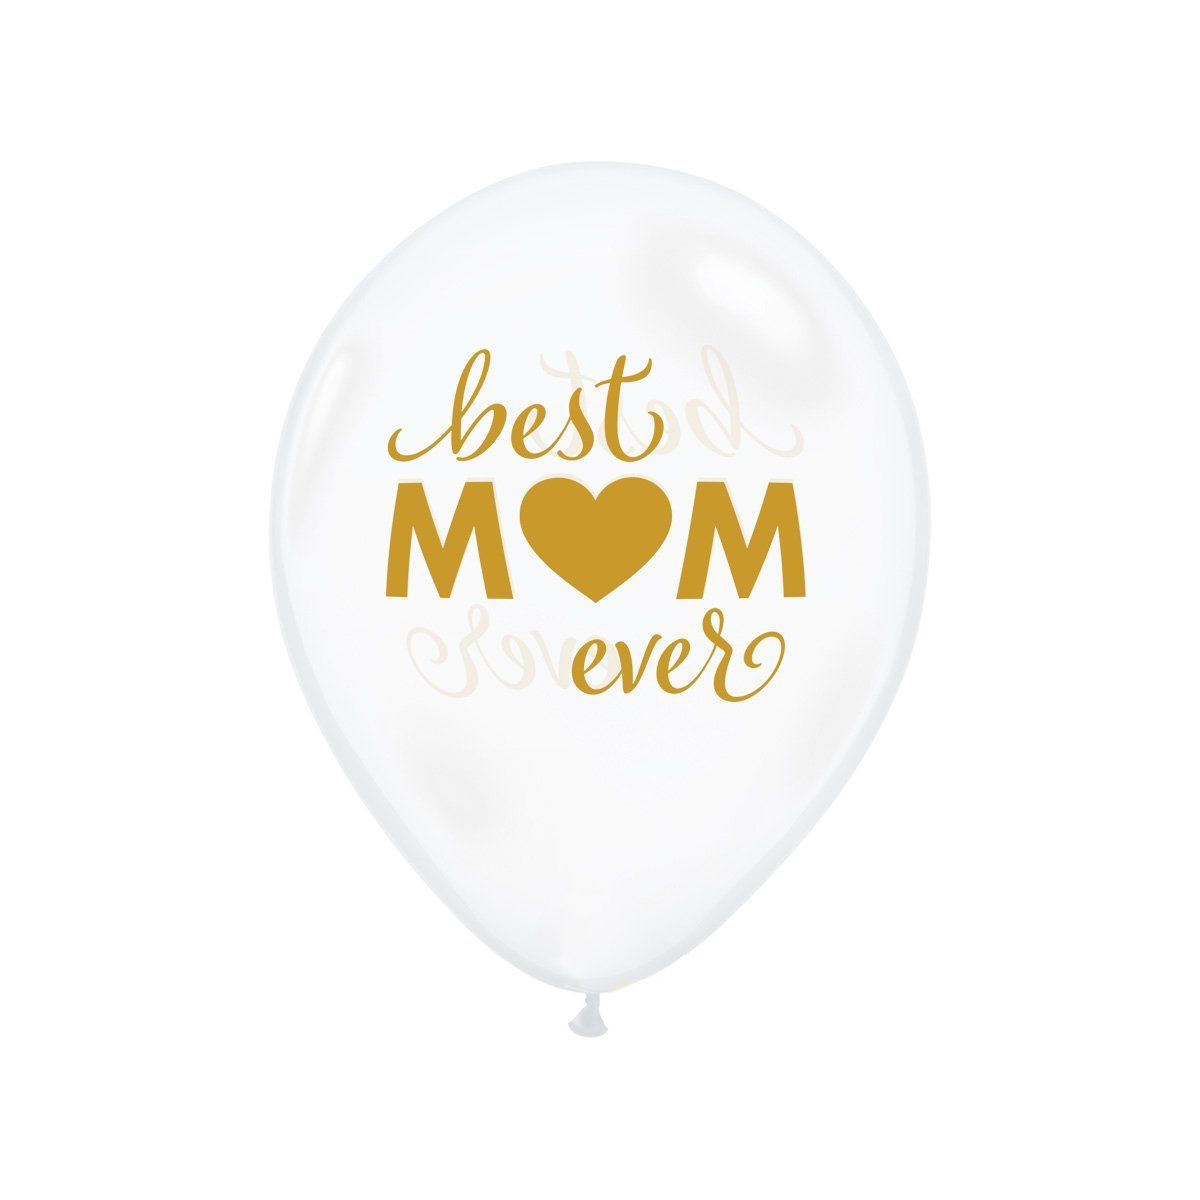 Best mum ever clear latex balloon - Sugar Coat It - Perth Dessert Boxes